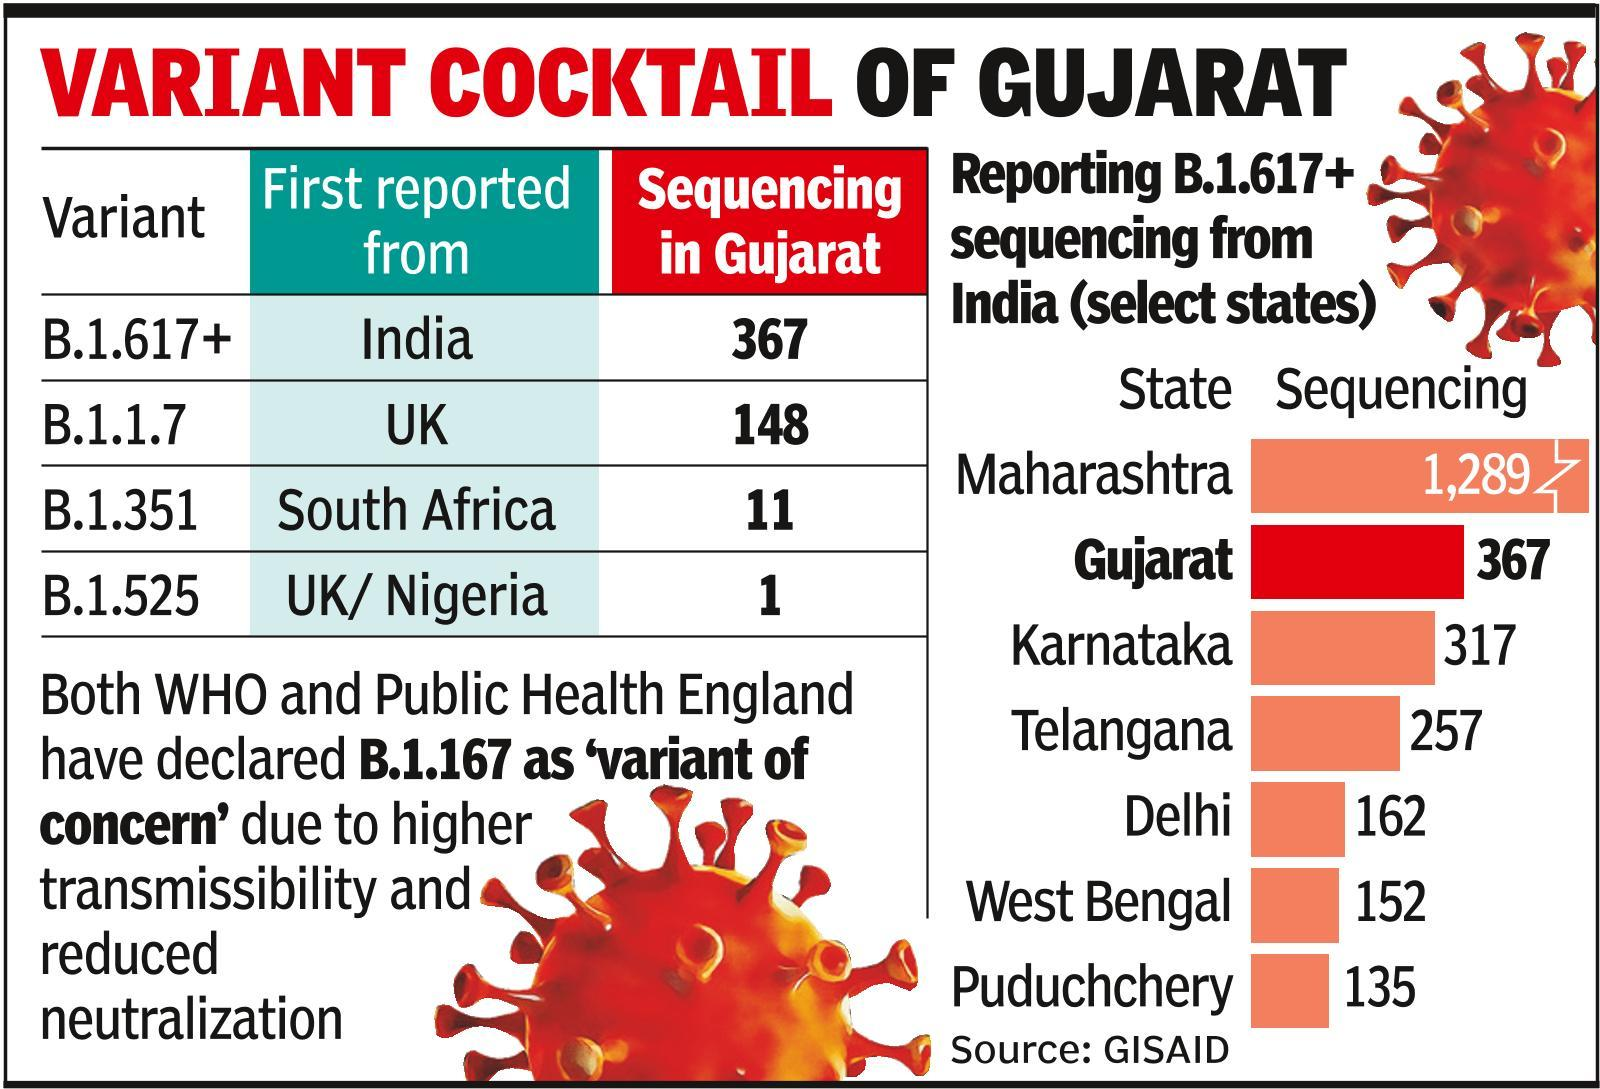 '367 genome sequences of B.1.617 variant reported from Gujarat'